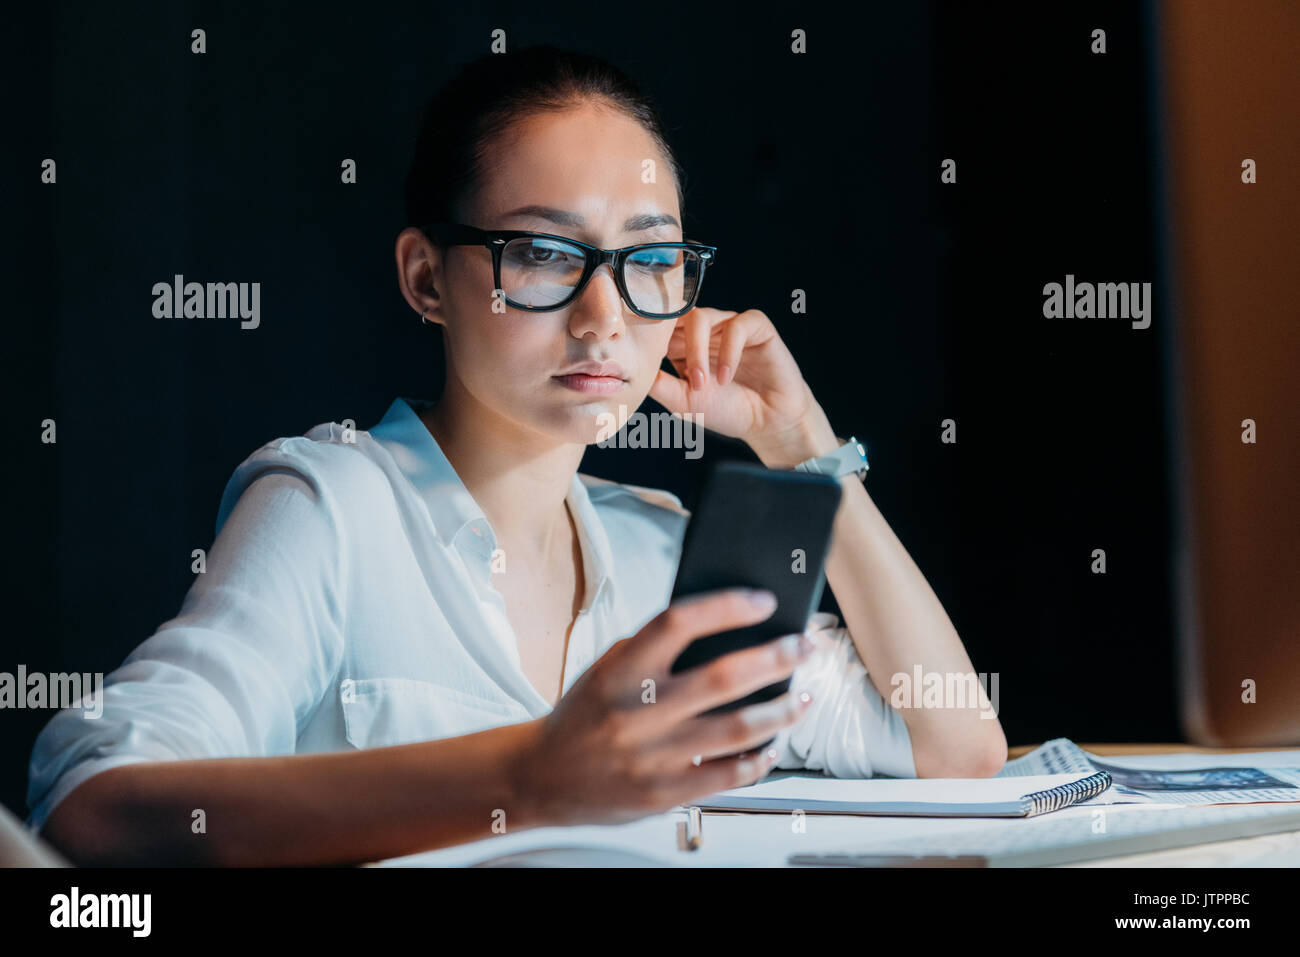 young tired asian businesswoman in eyeglasses using smartphone and working till late in office - Stock Image